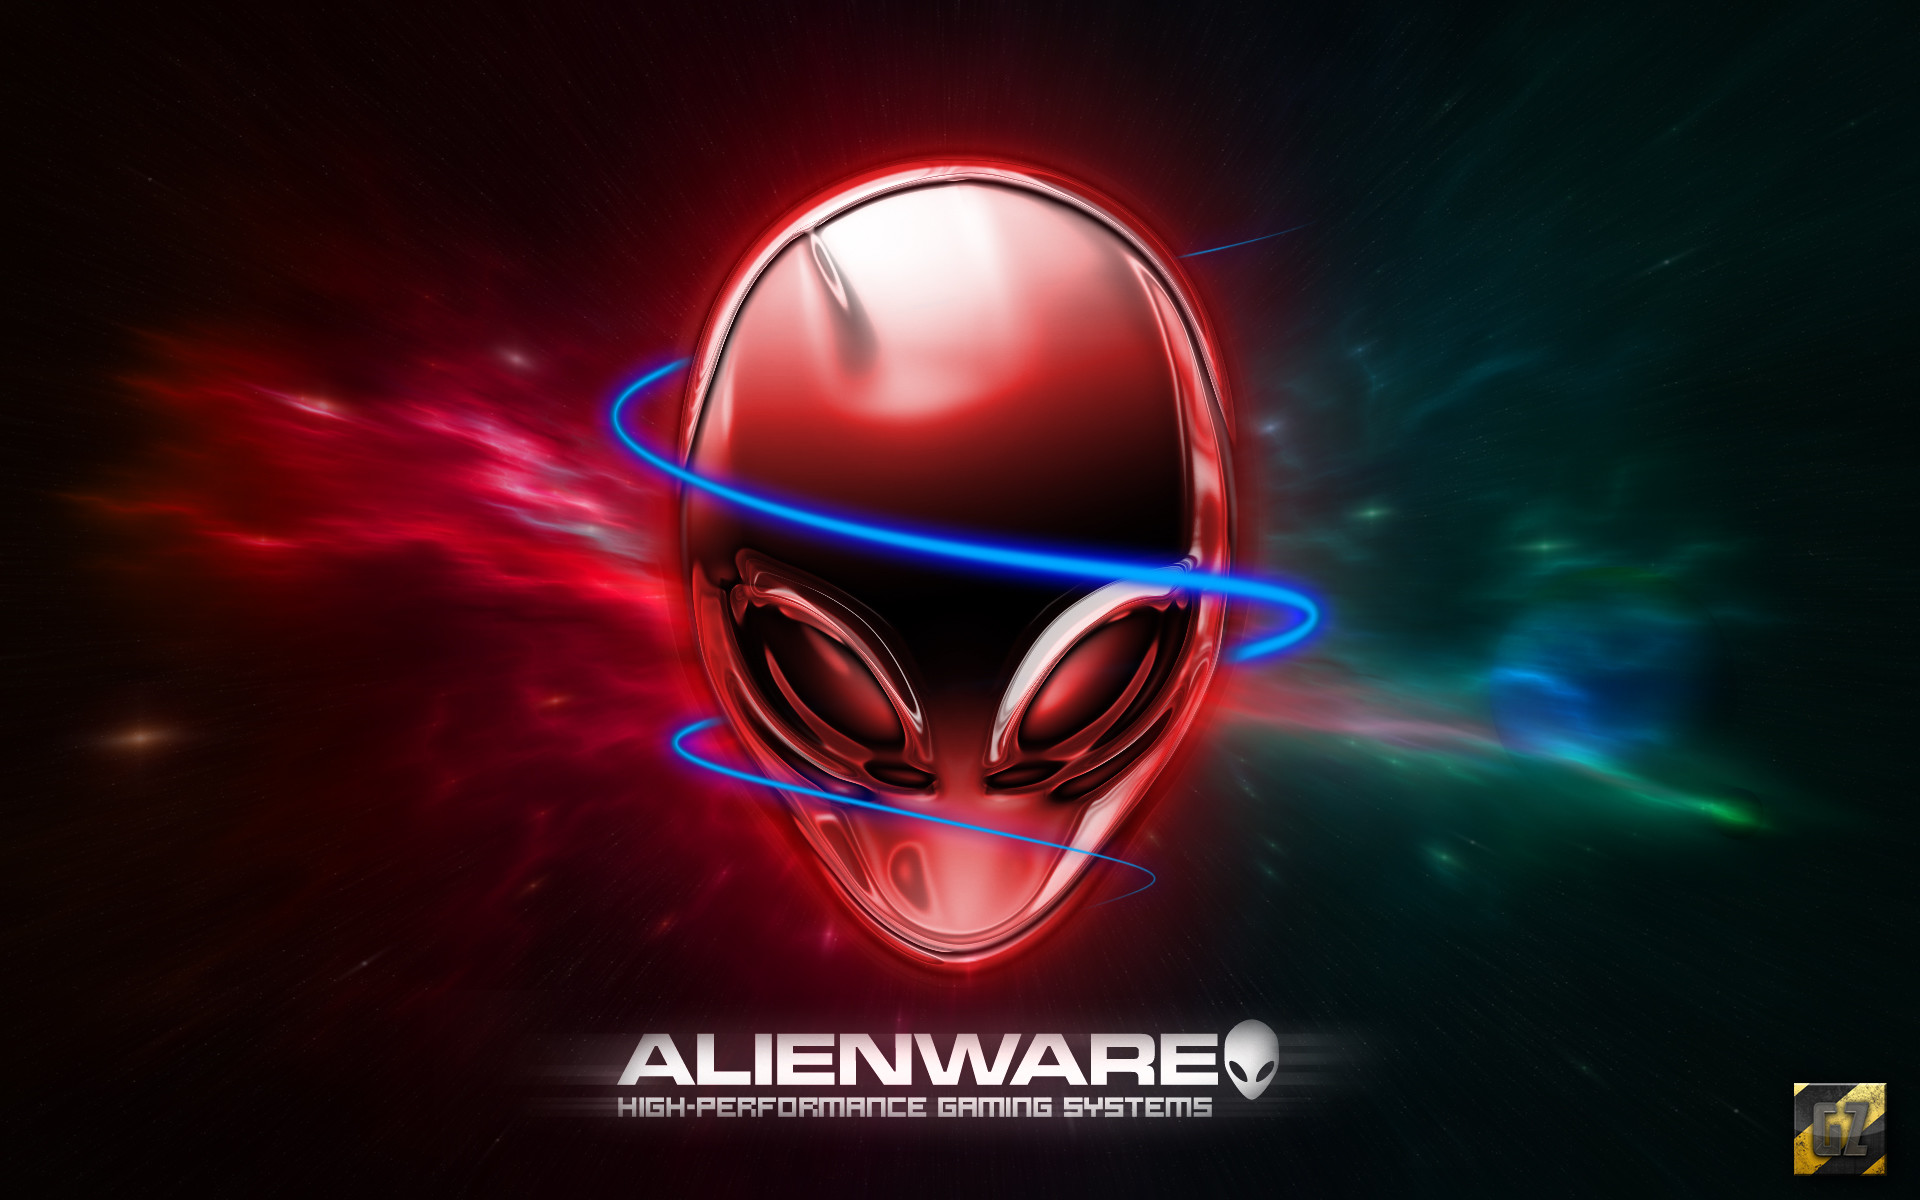 wallpaper   Alienware   Pinterest   Wallpapers   computer wallpaper for  android phone   Pinterest   Alienware and Android